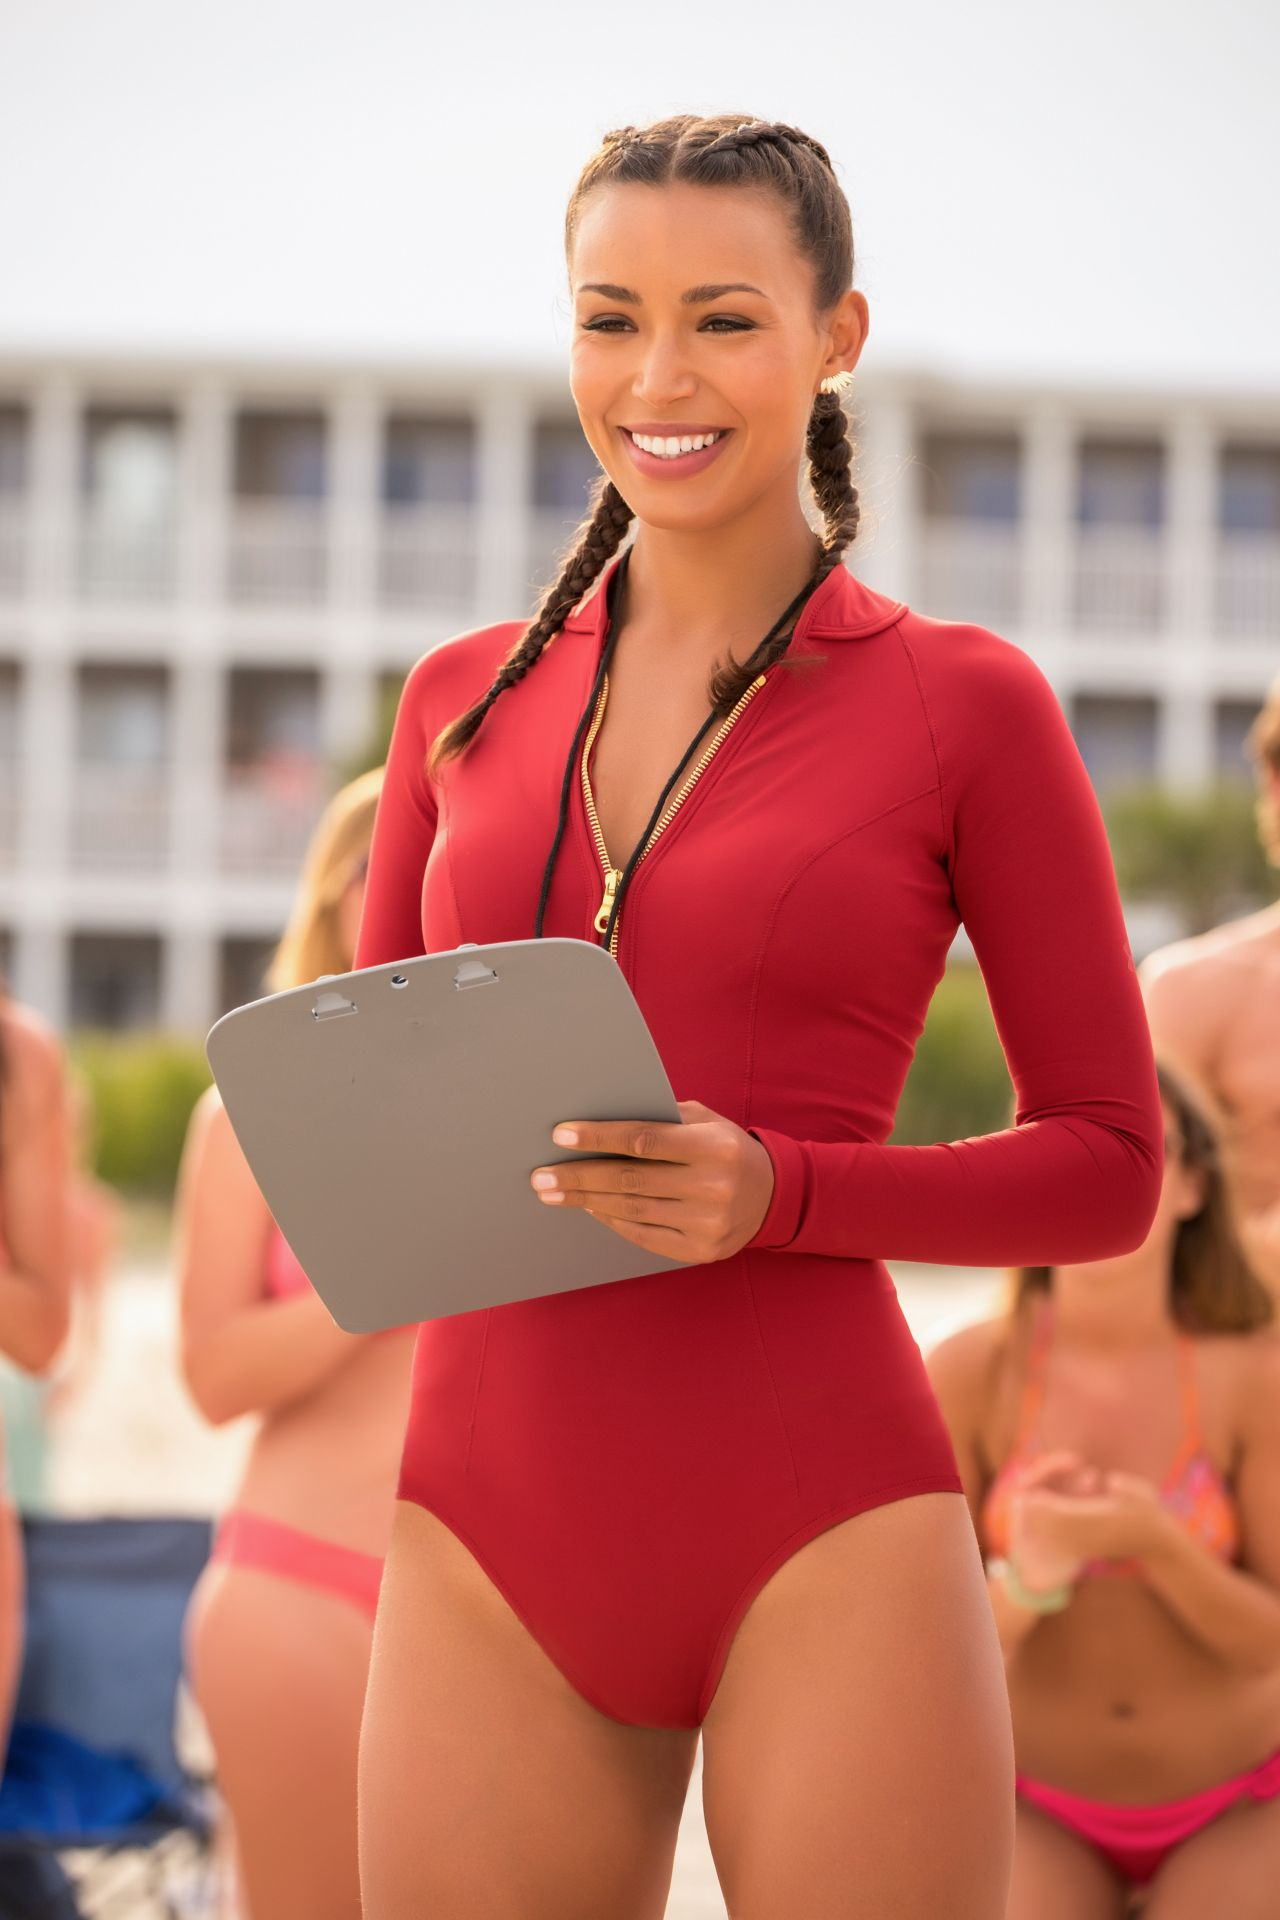 Get to know #Baywatch breakout star Ilfenesh Hadera https://t.co/z6Q4y6ZSQa https://t.co/5wcWEcRSaD